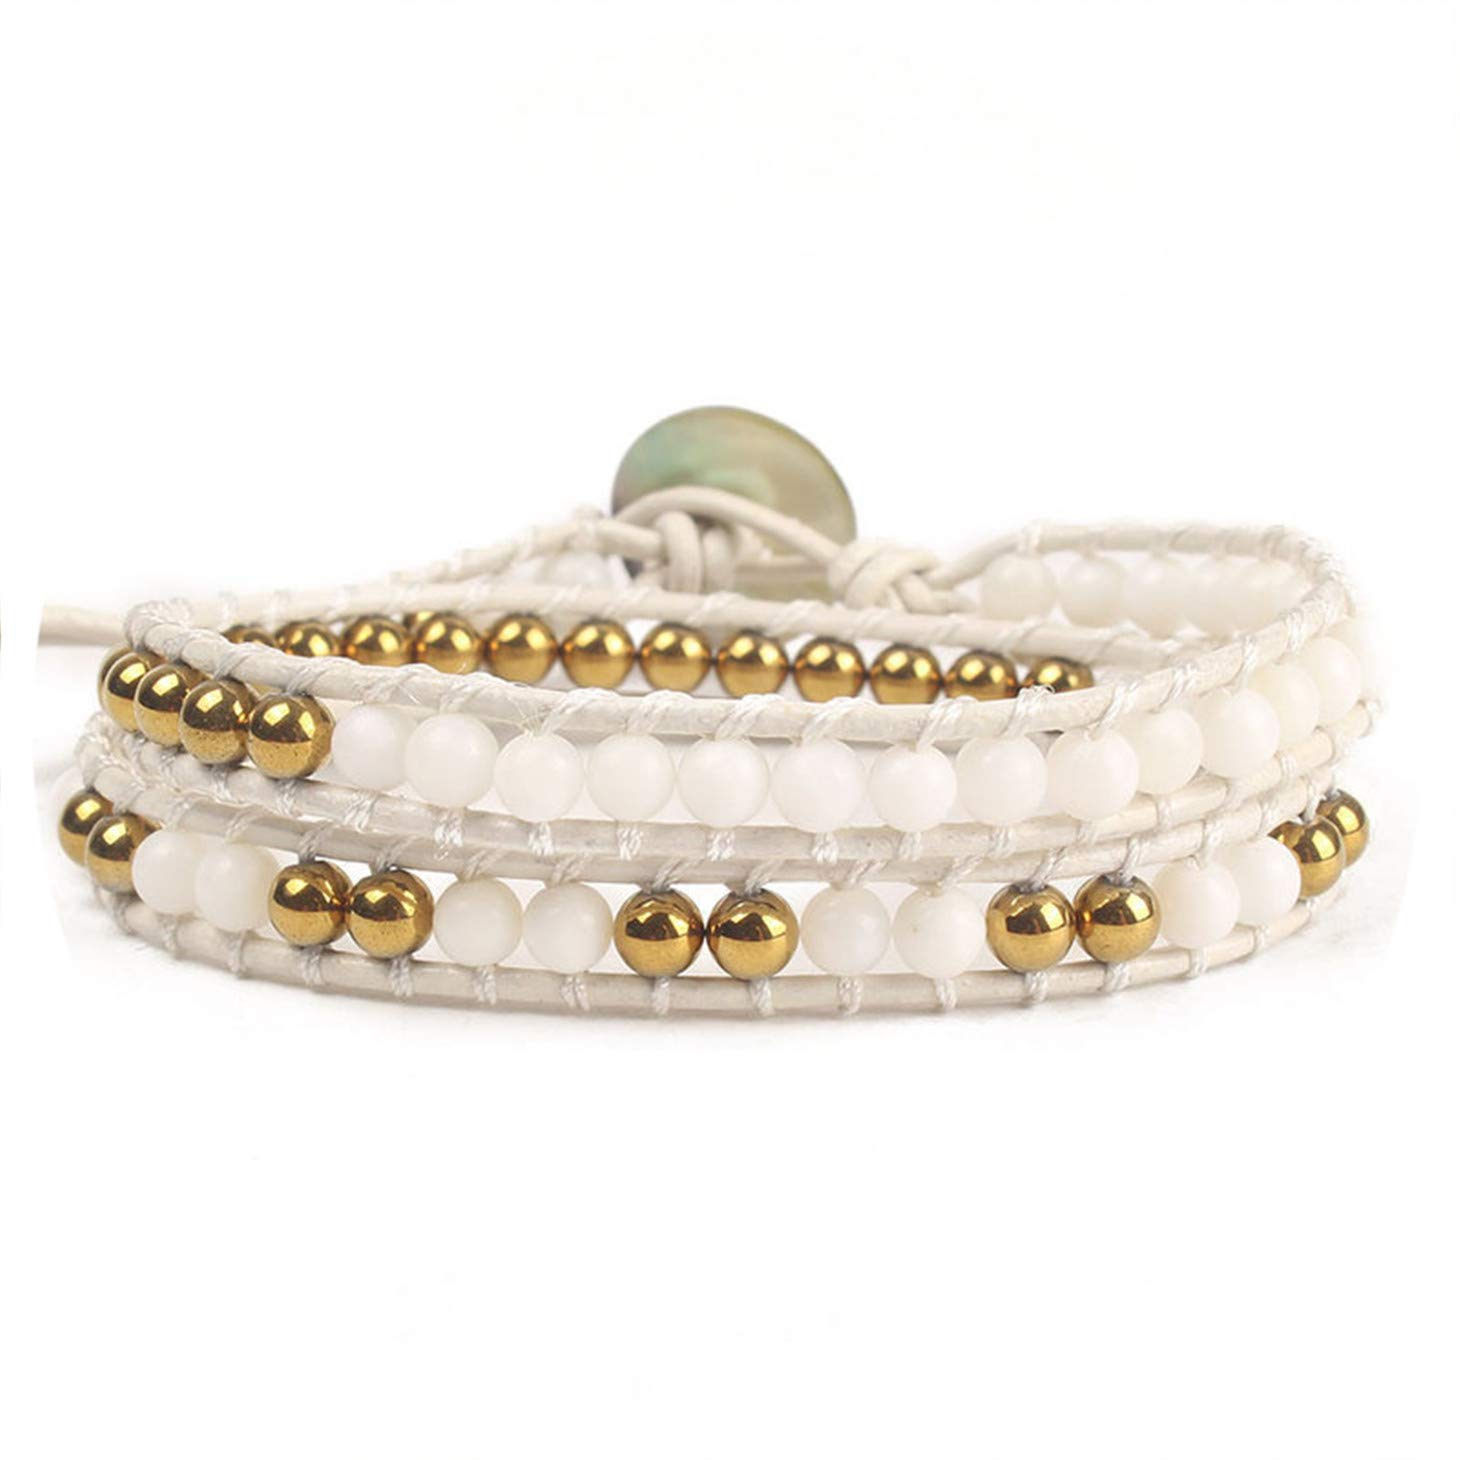 Unique Charming Beaded Bracelet Handmade Weaving White Leather Wrap Gold-Color & White Natural Ston